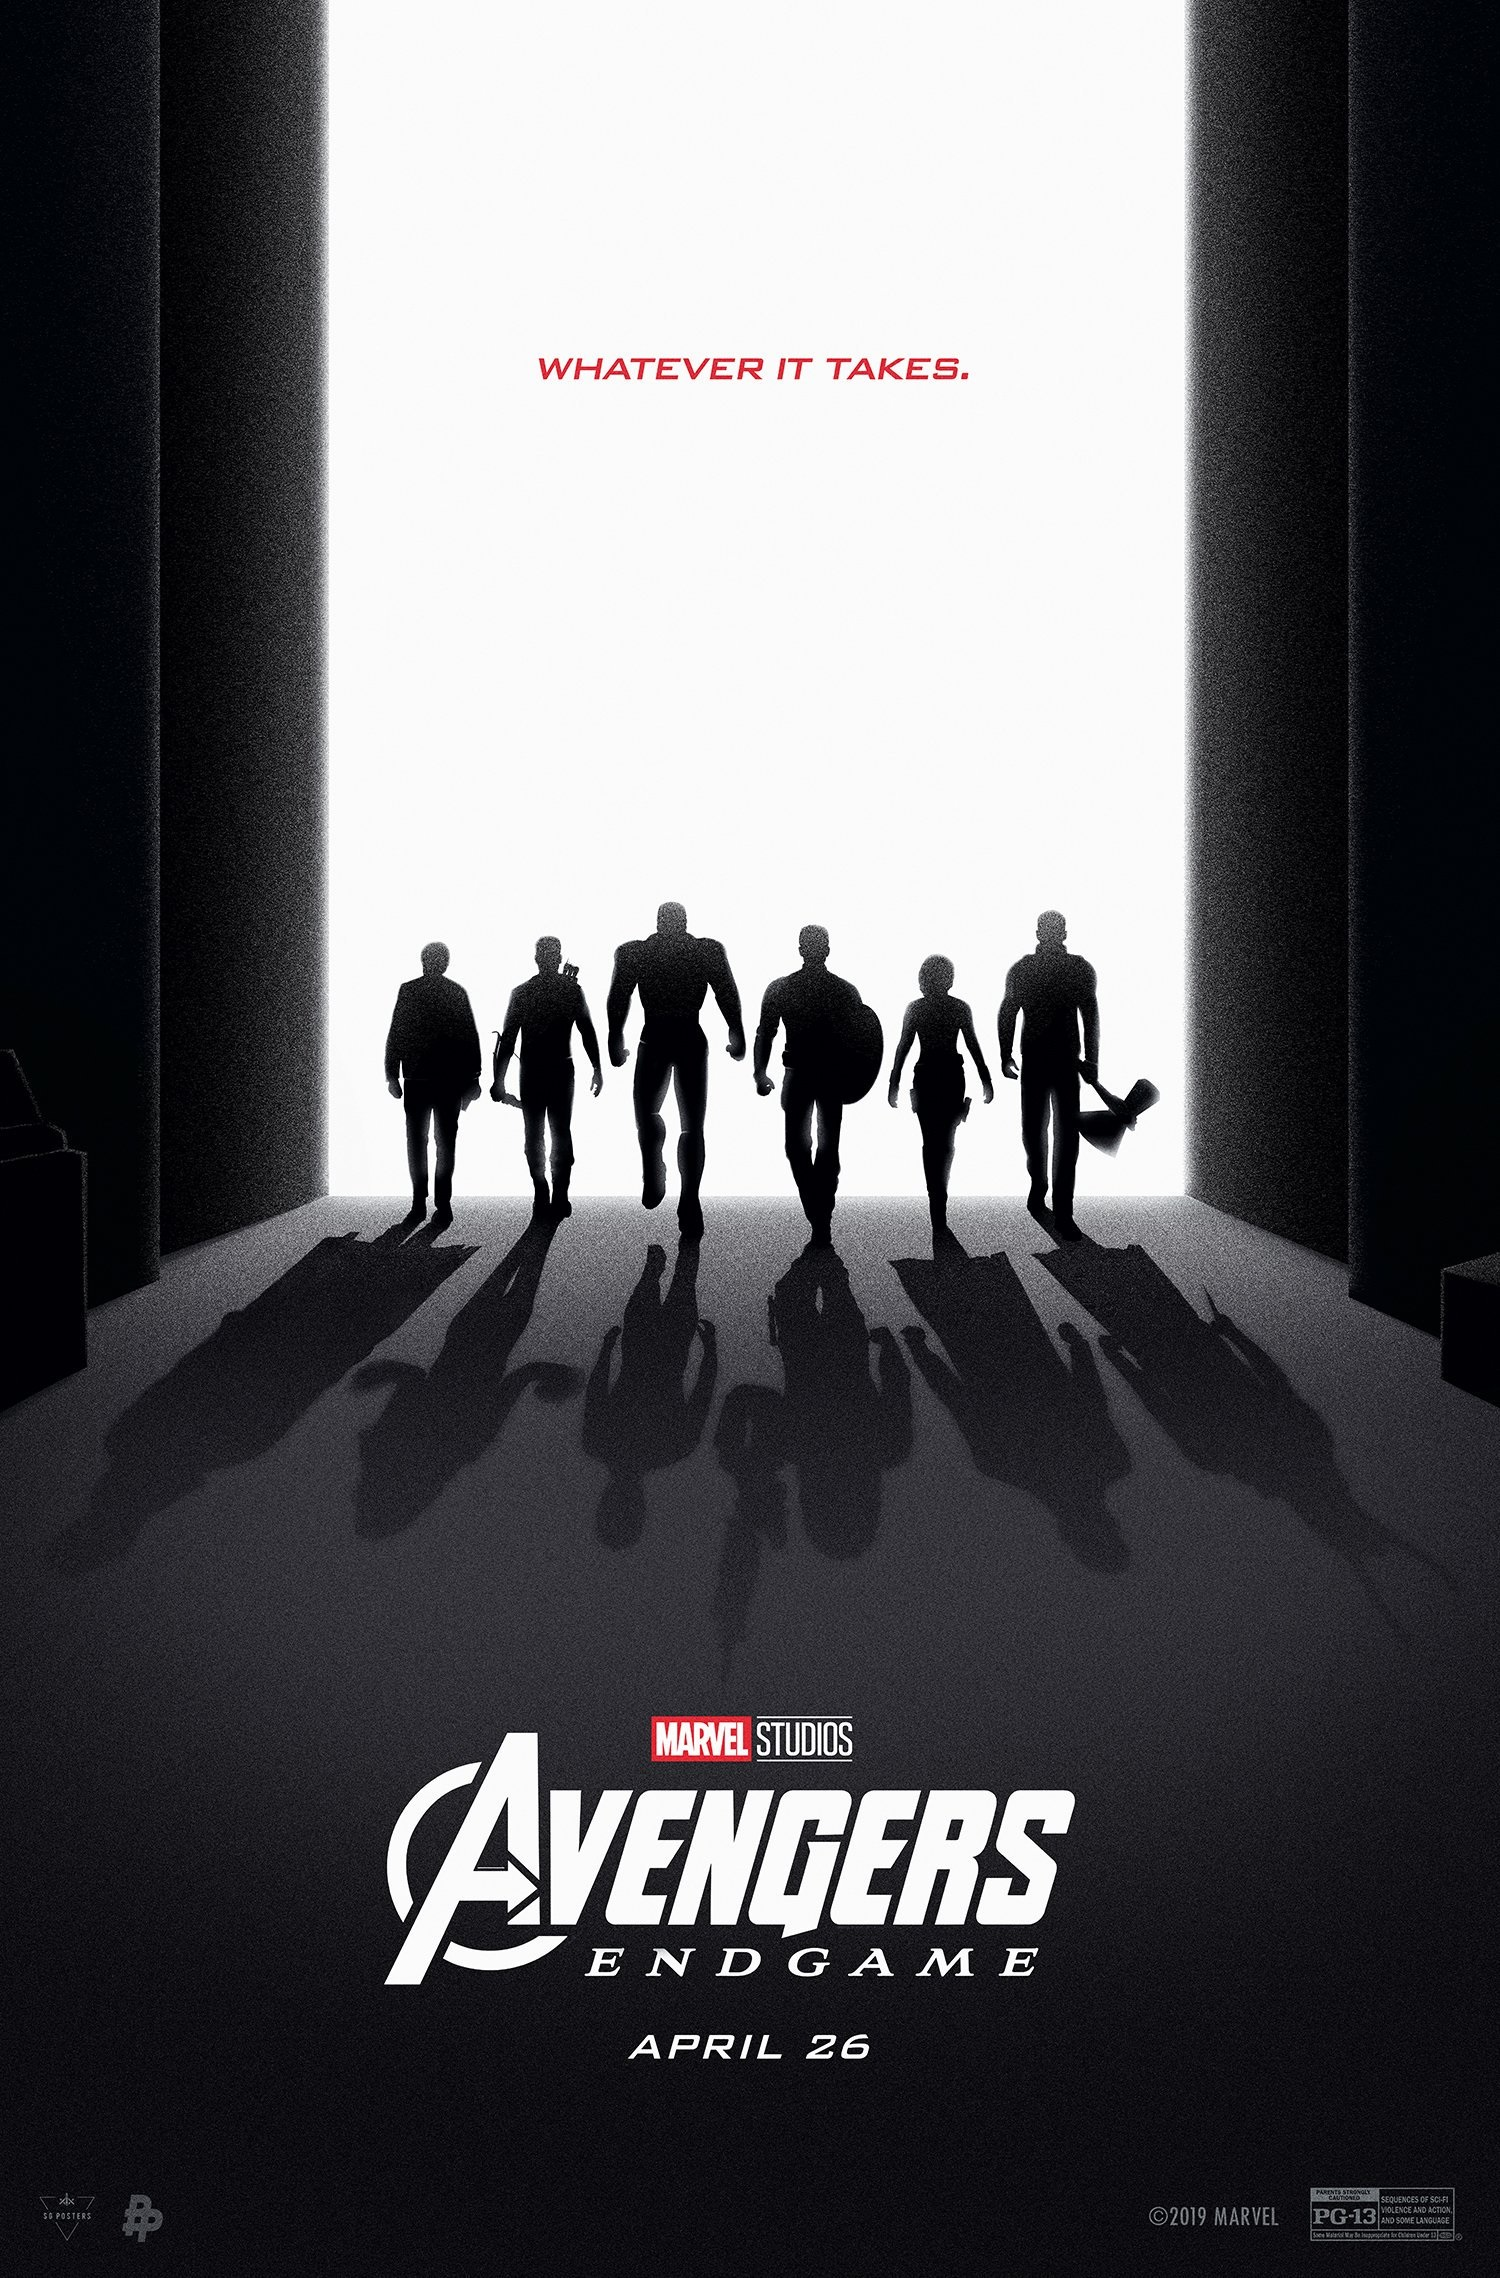 Avengers: Endgame inspired poster by Poster Posse